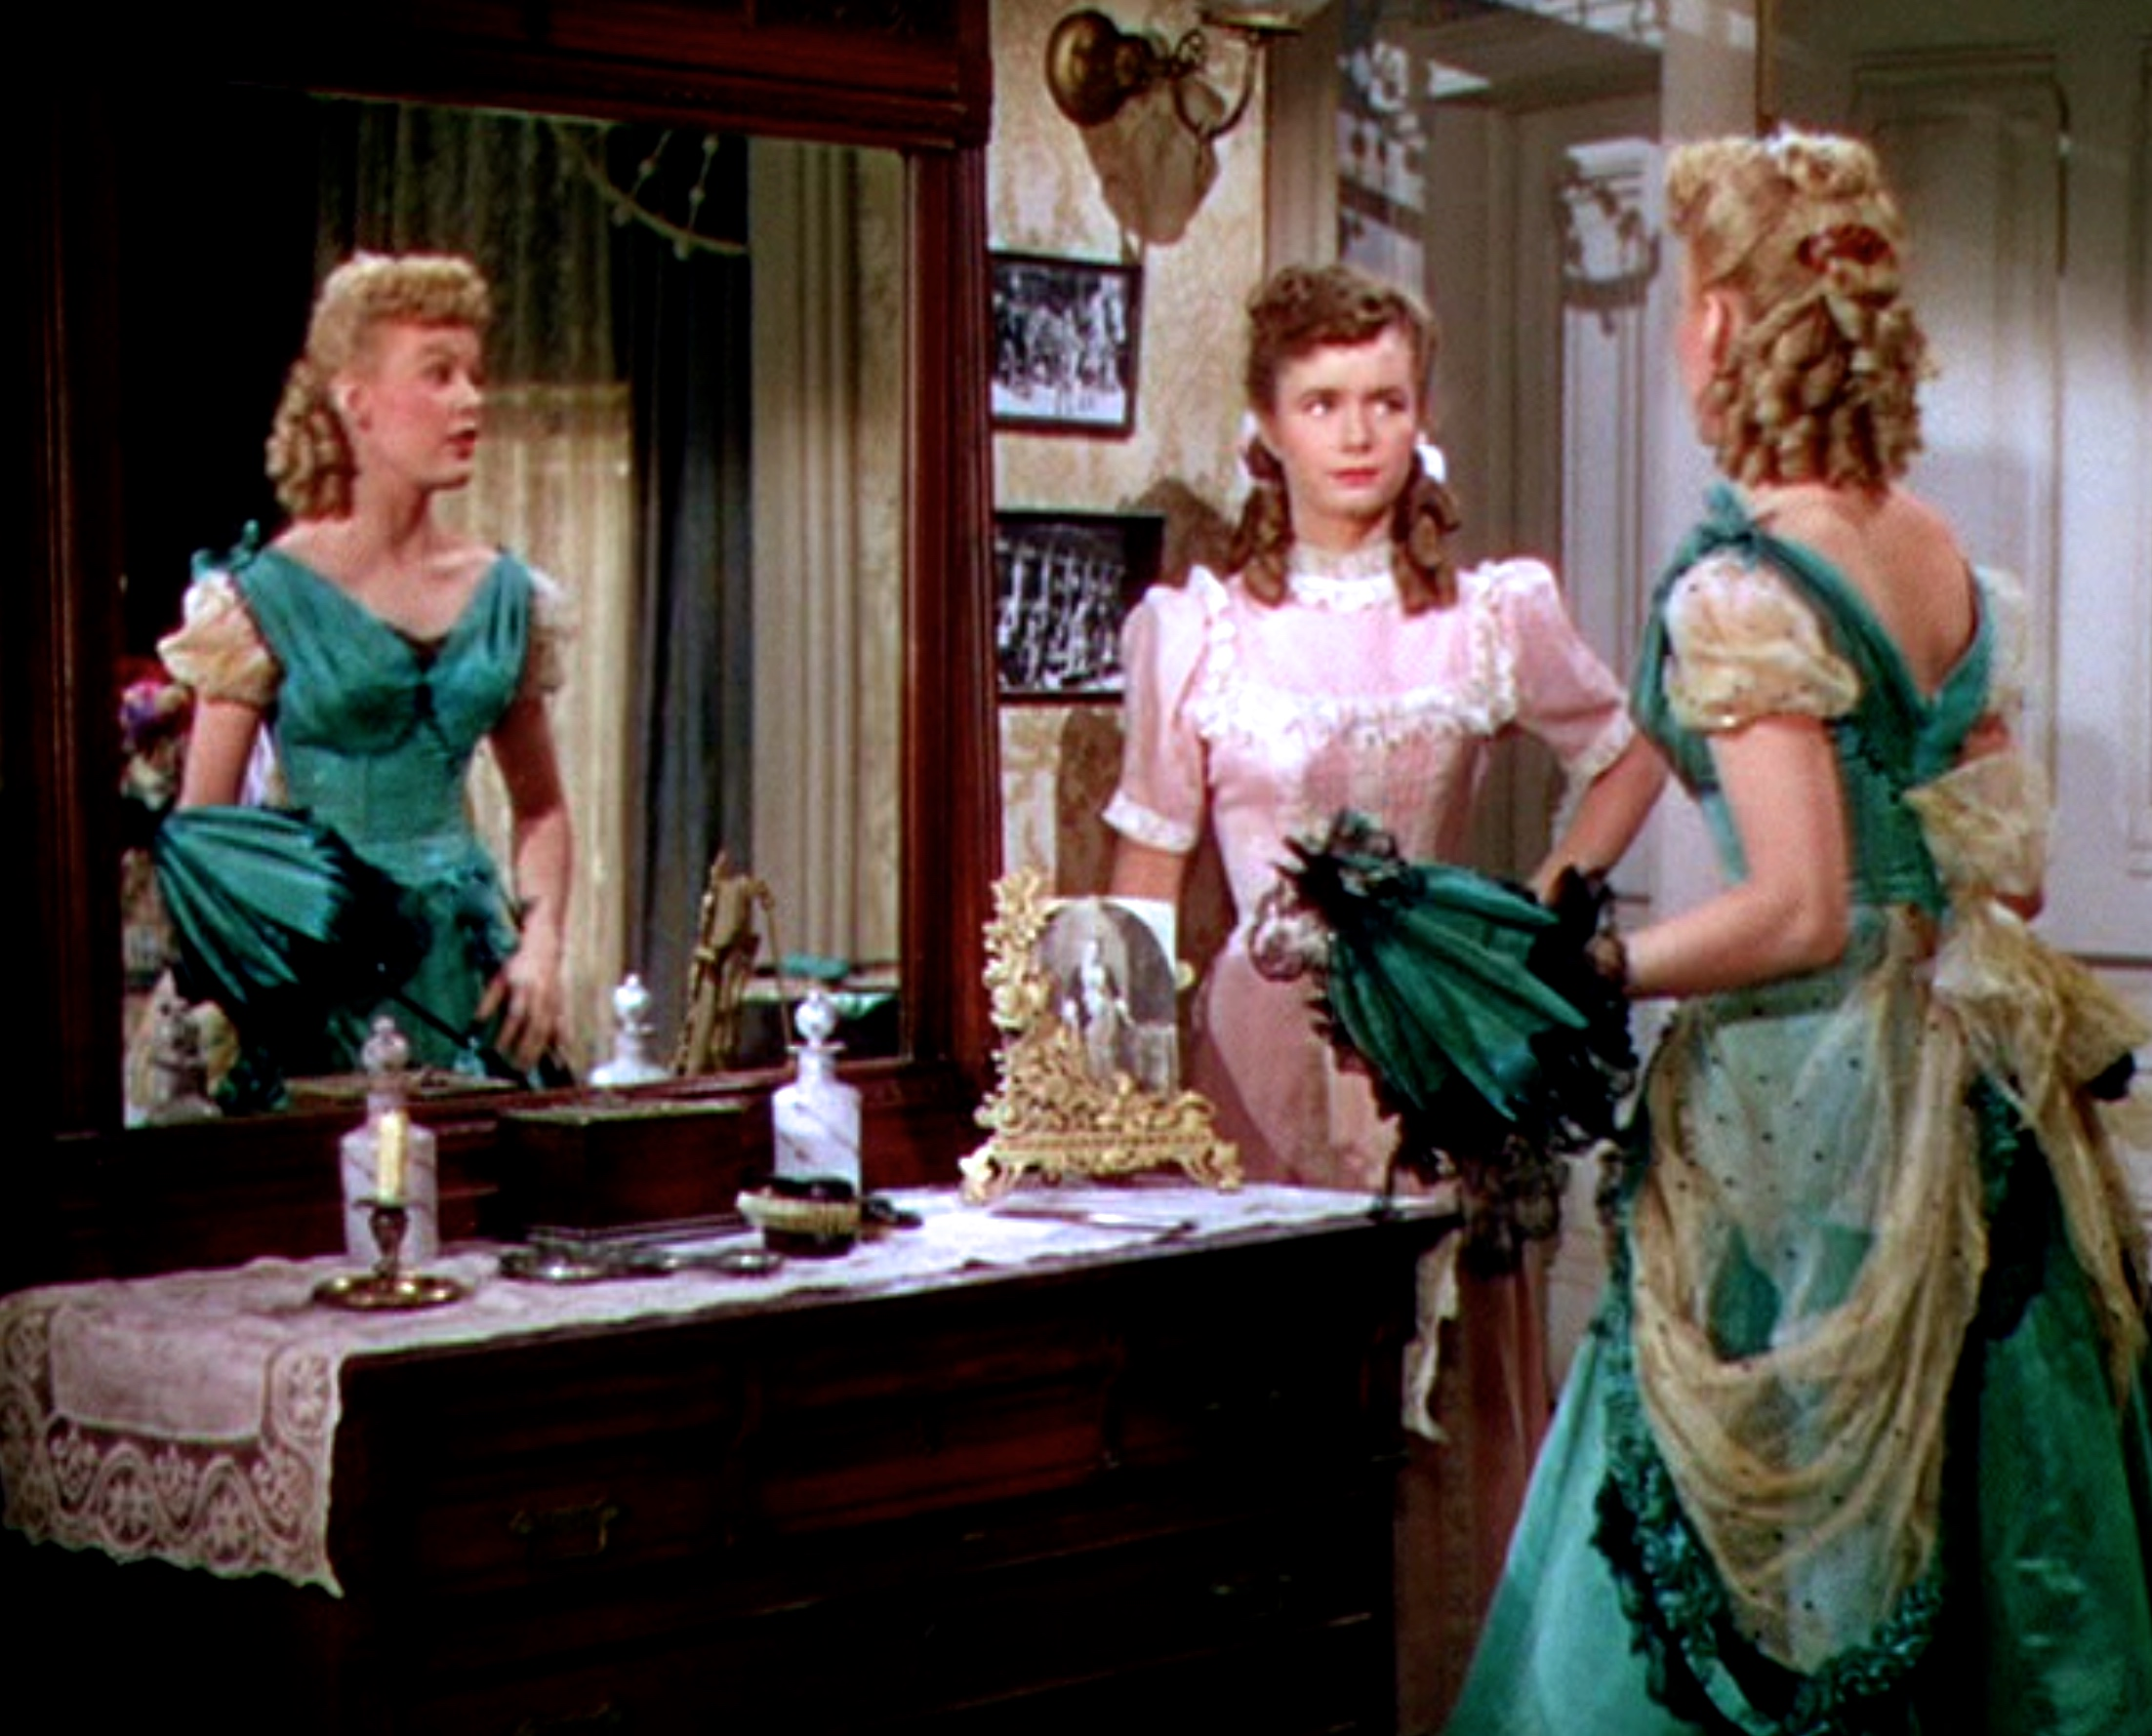 Debbie Reynolds and June Haver in The Daughter of Rosie O'Grady (1950)